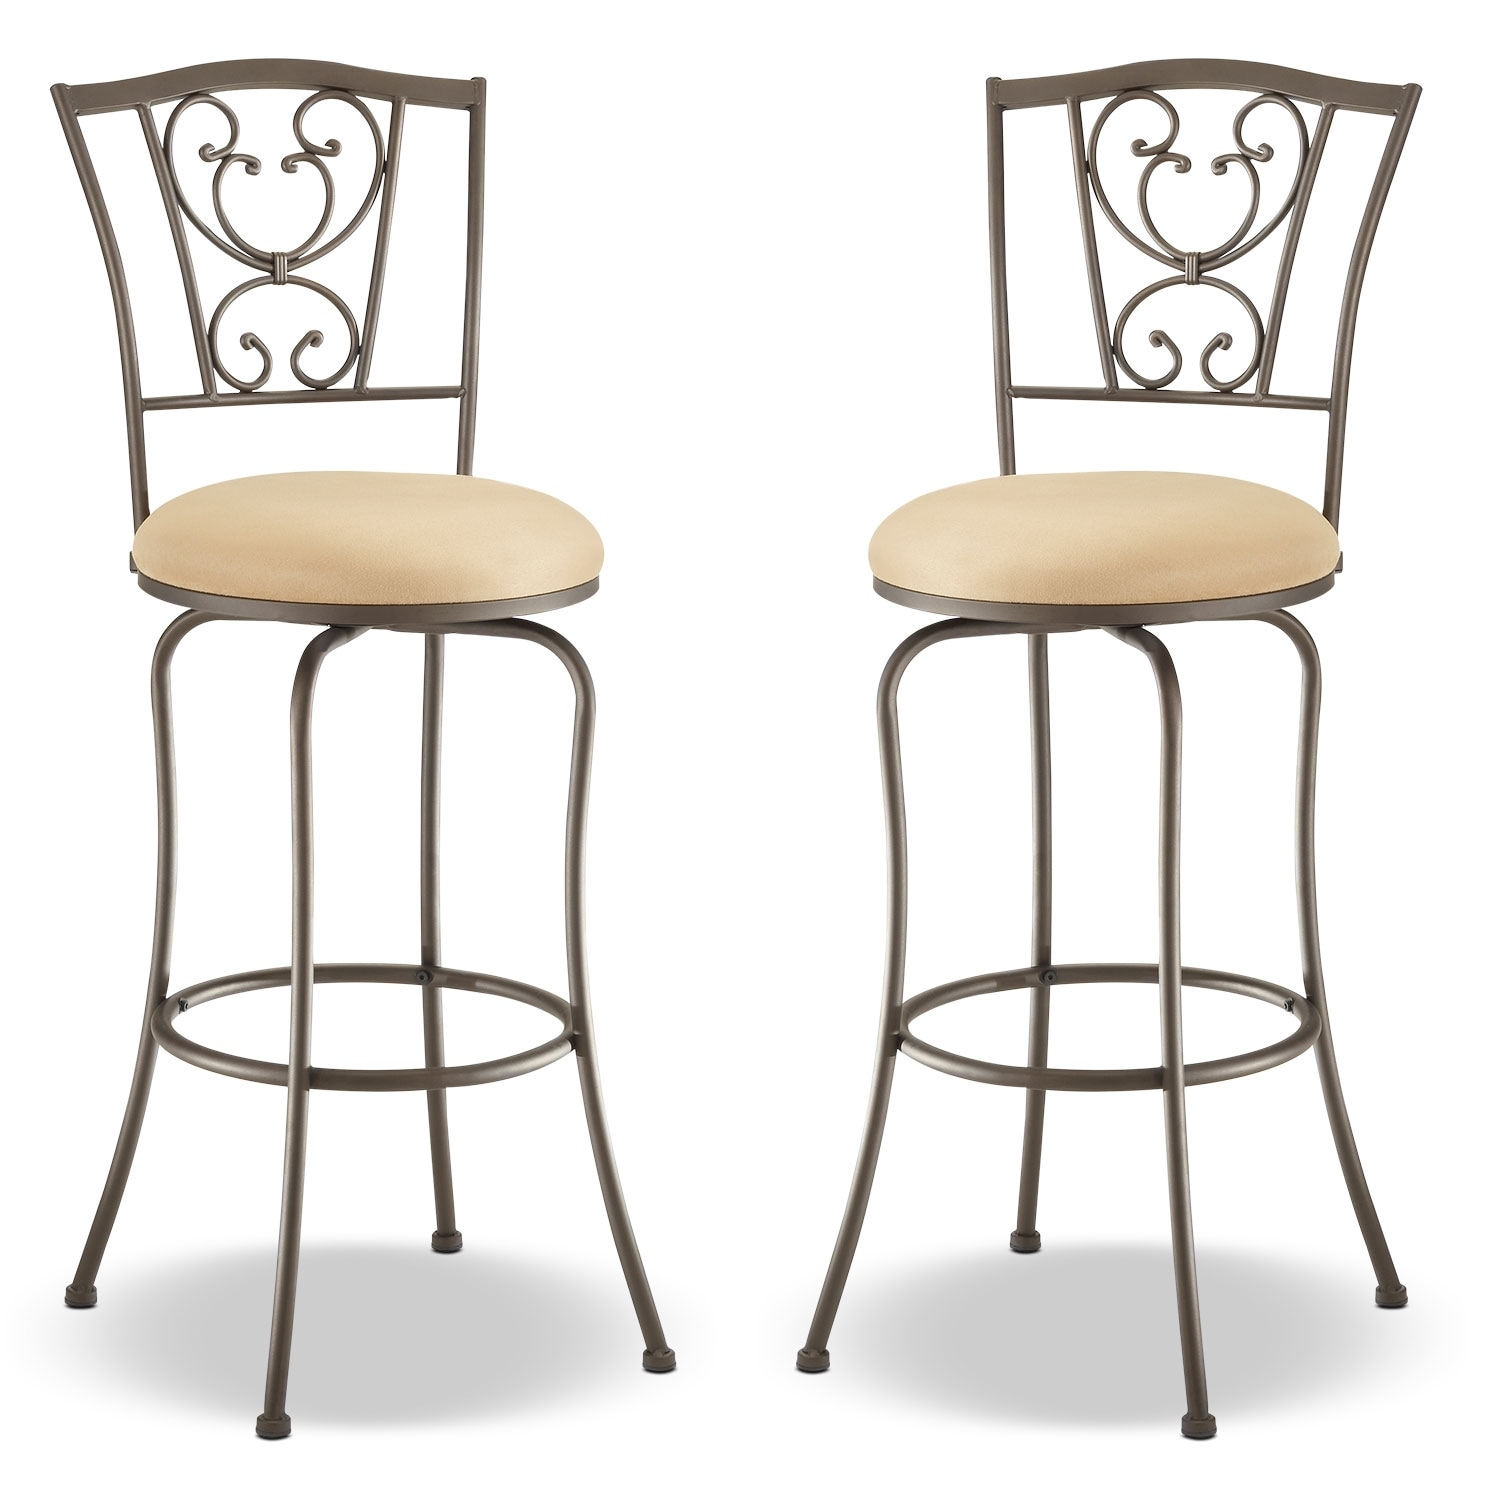 Concord Counter Height Swivel Stool Set of 2 The Brick : 374687 from www.thebrick.com size 1499 x 1500 jpeg 298kB